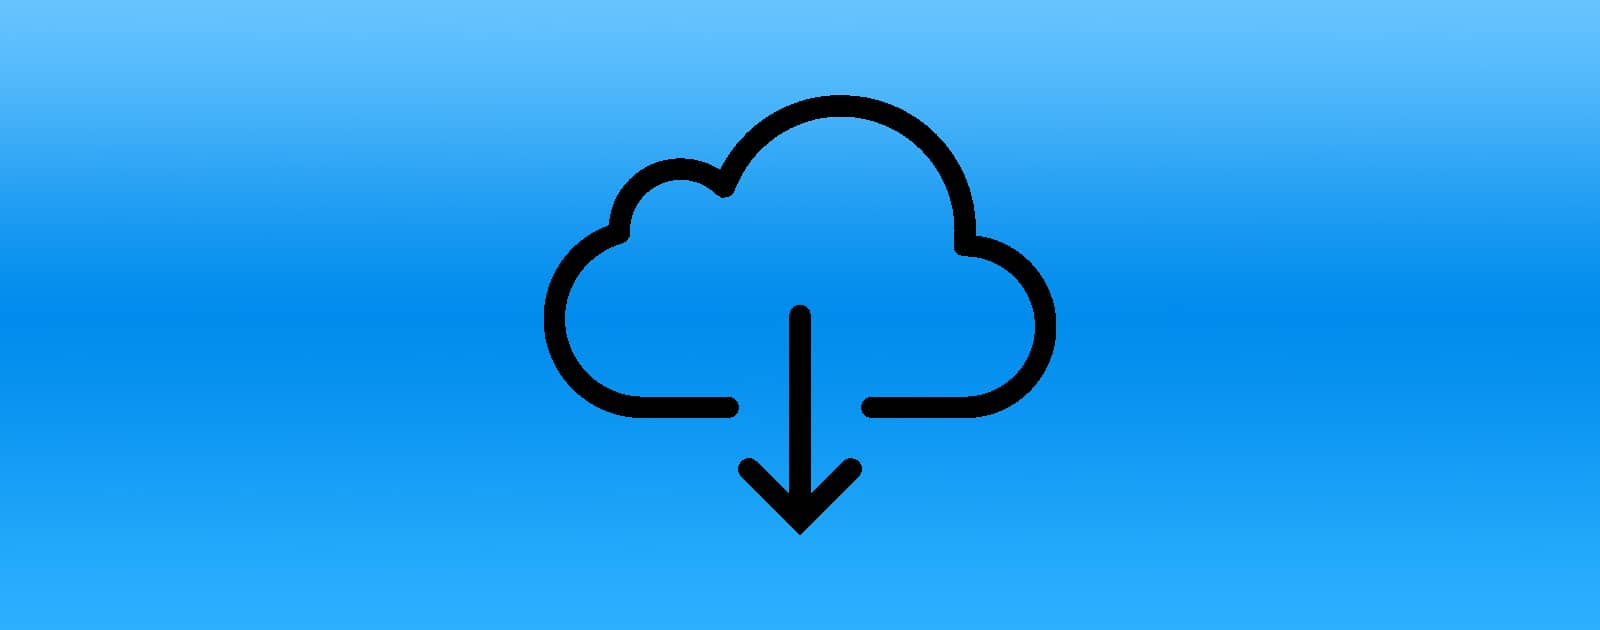 iCloud drives are sync services, not backup services